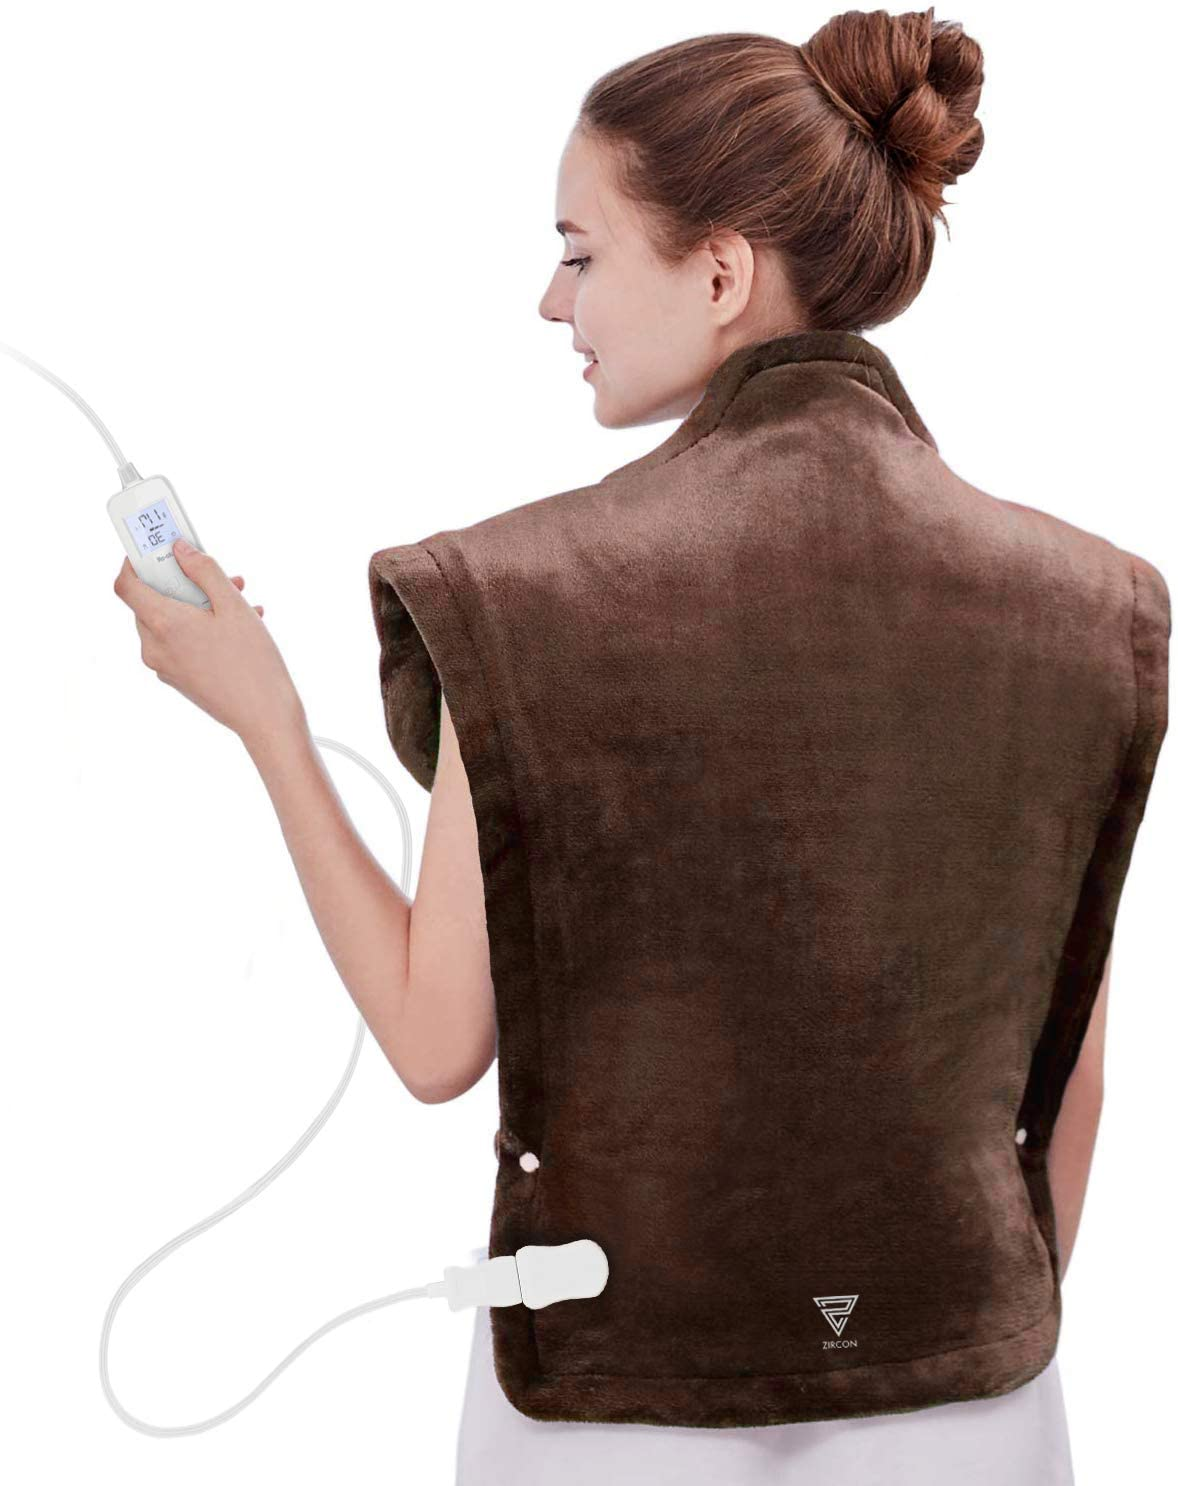 Slidifix Heating Pad for Back and Shoulder Pain - 24 x 33 inches Heat Pad – 5 Different Heat Settings for Cramp Relief – Cures Sports Soreness – Auto Shut Off – Flexible Adjustment